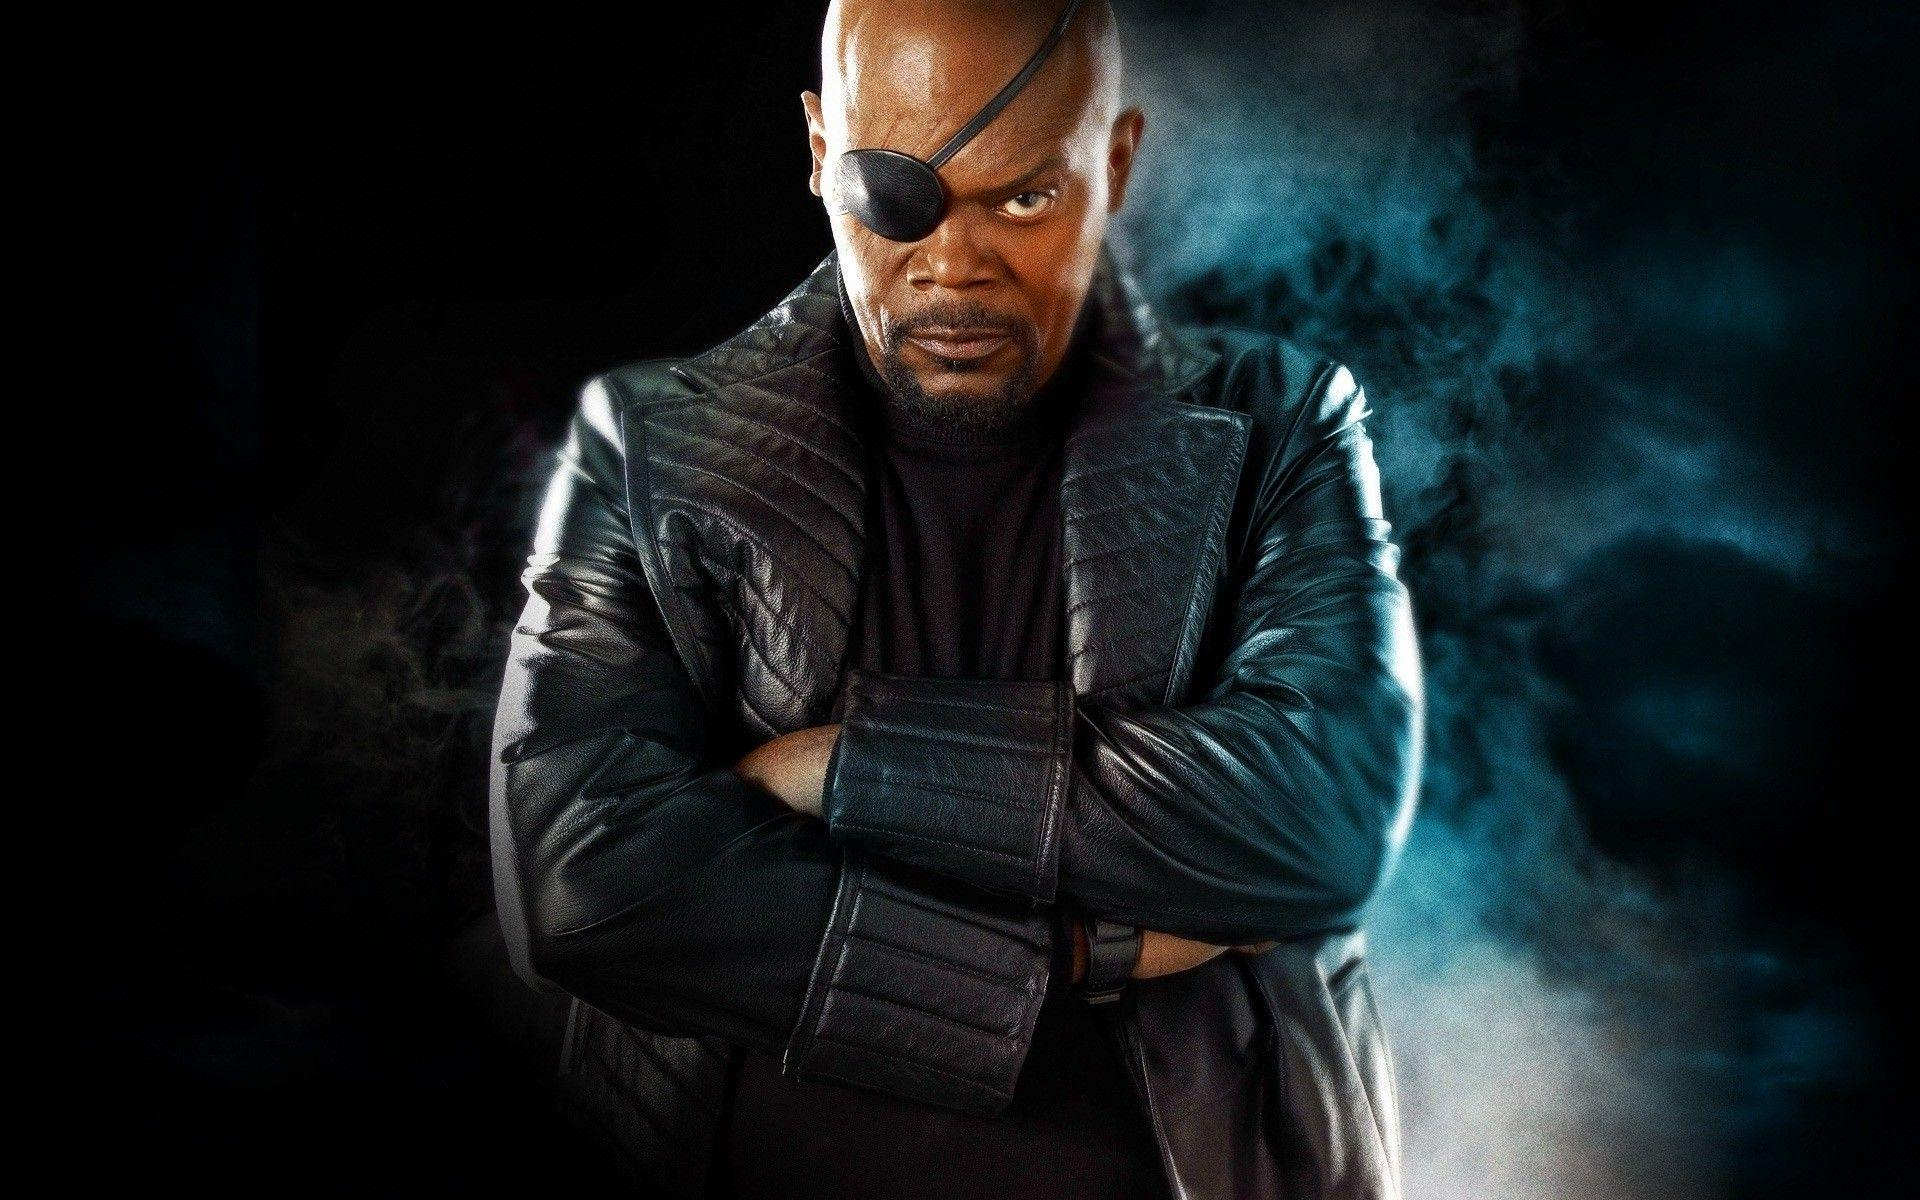 Samuel L. Jackson, Nick Fury, Eyepatches, Arms Crossed, Captain